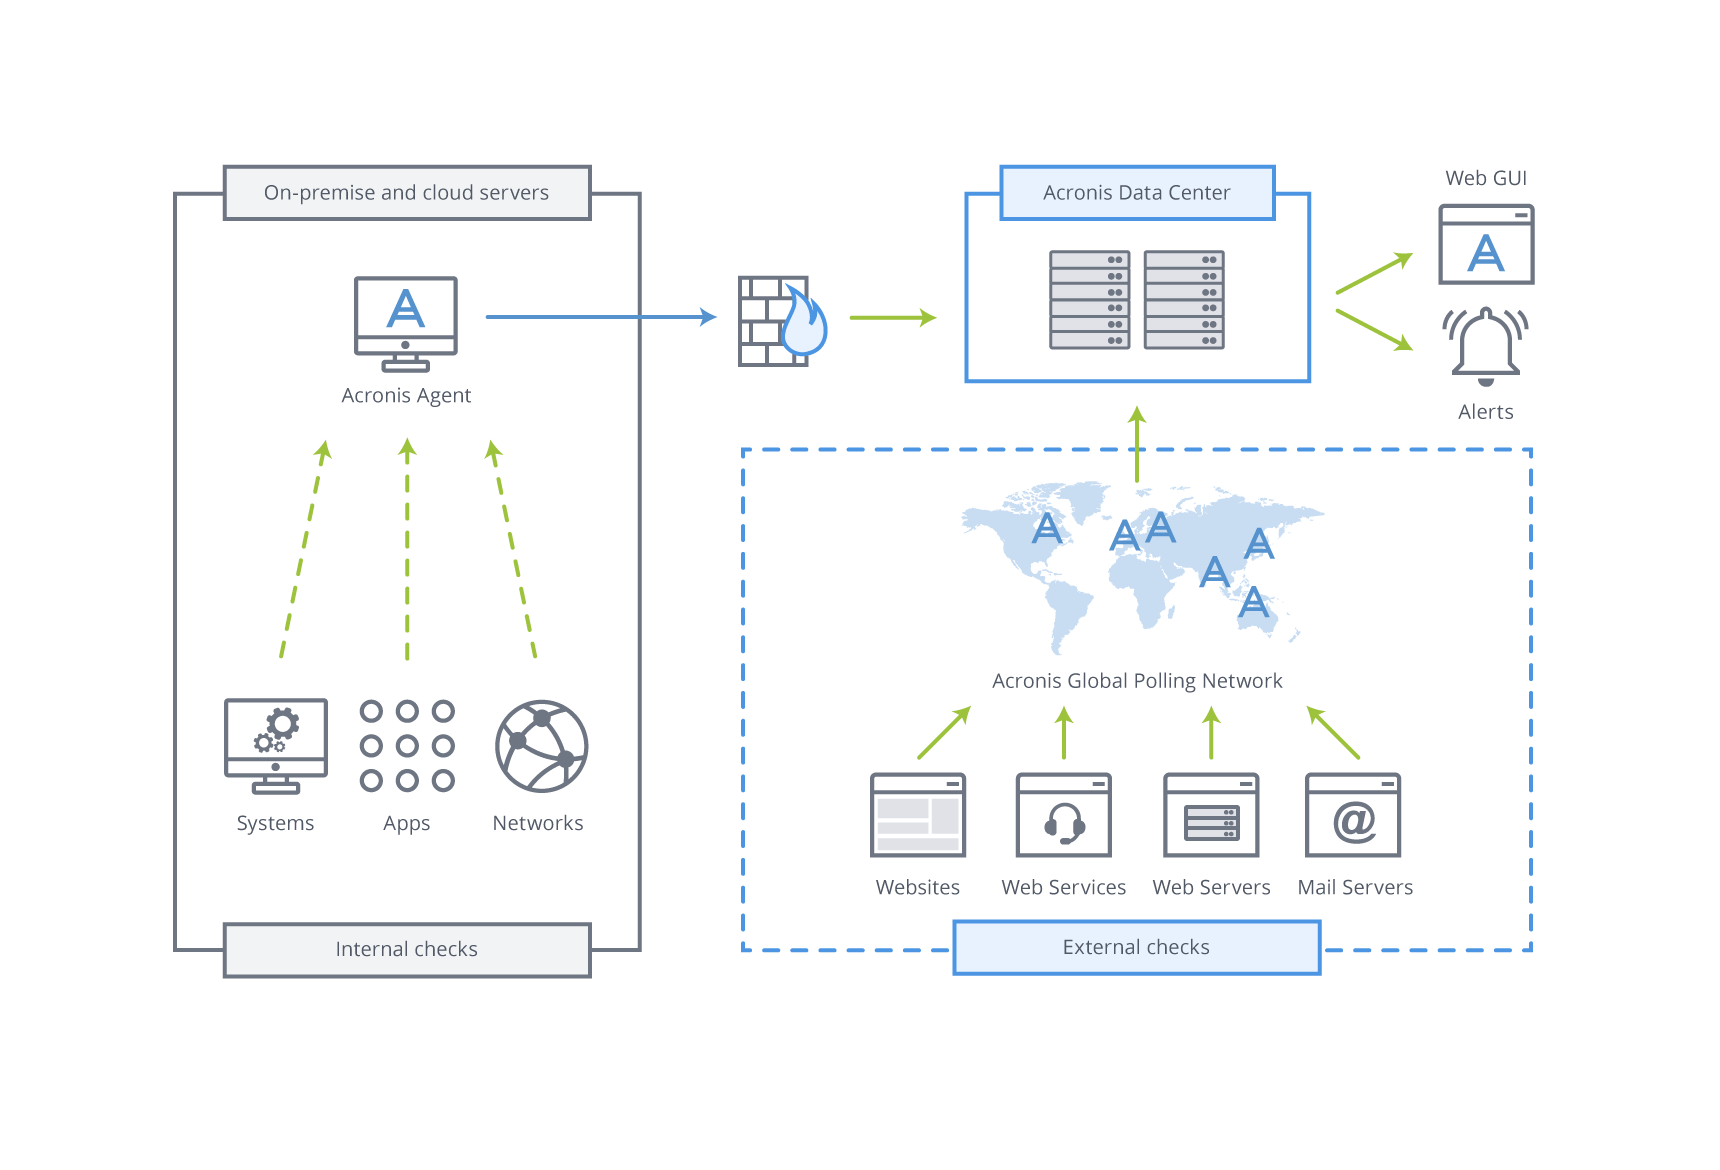 Saas Based Monitoring Service For Servers Applications Networks Small Office Network Setup Diagram Uses Footprint Native Agents Installable On Onsite Or Cloud Enabling Of Full It Infrastructure System